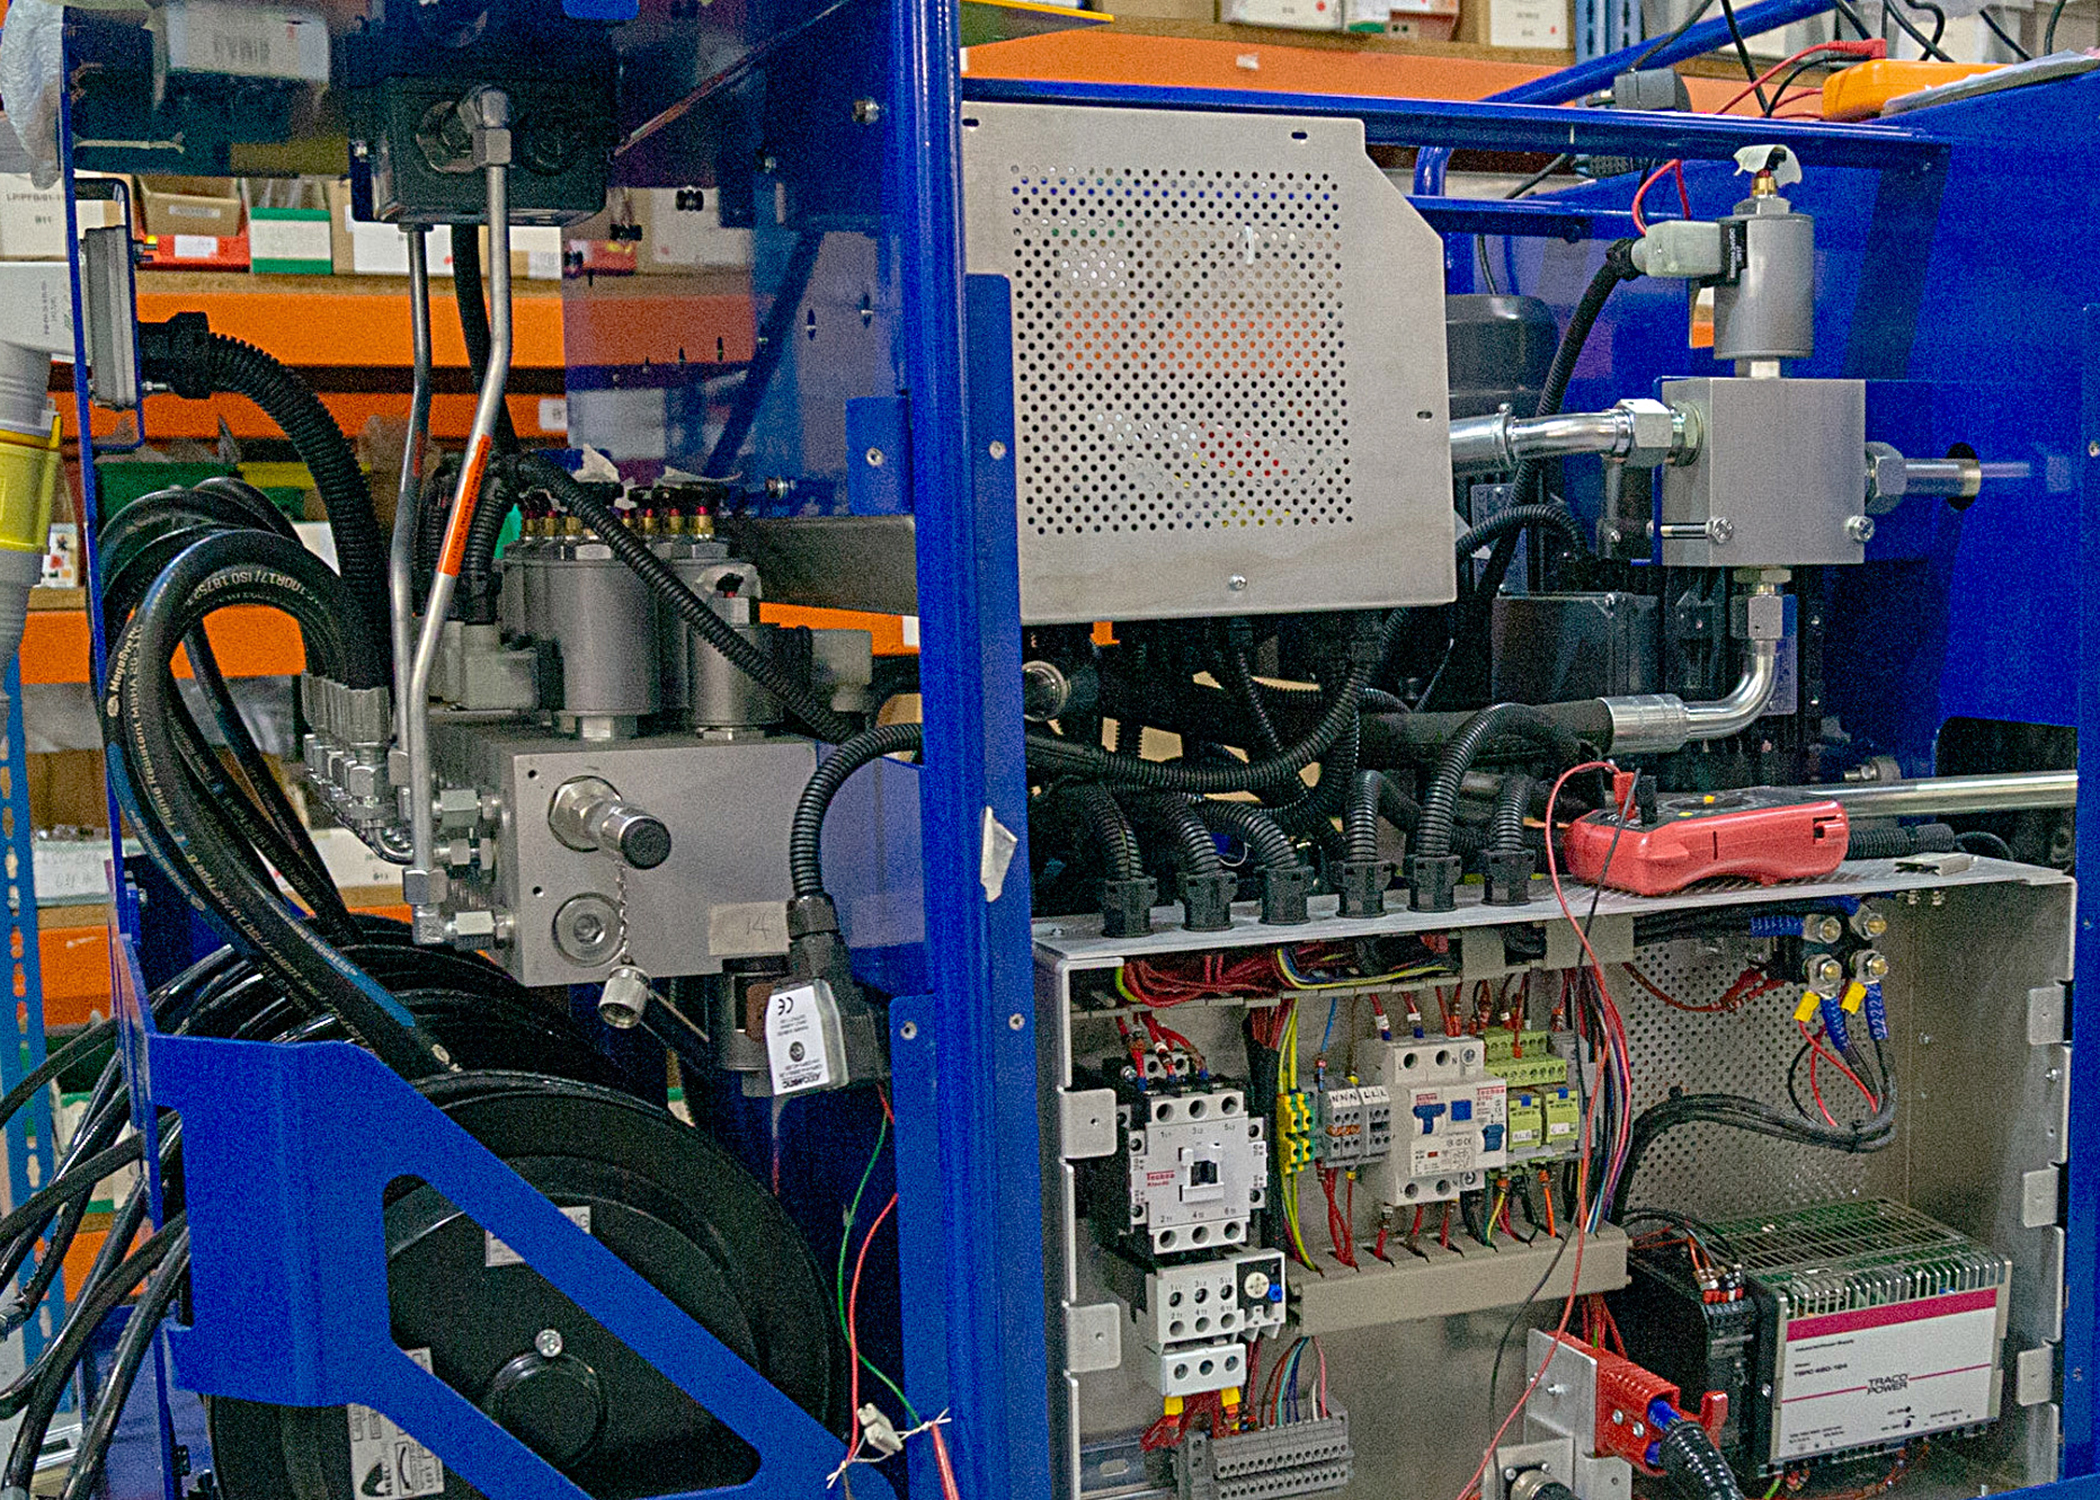 Camis offers specialist expertise and knowledge in motors and electronics